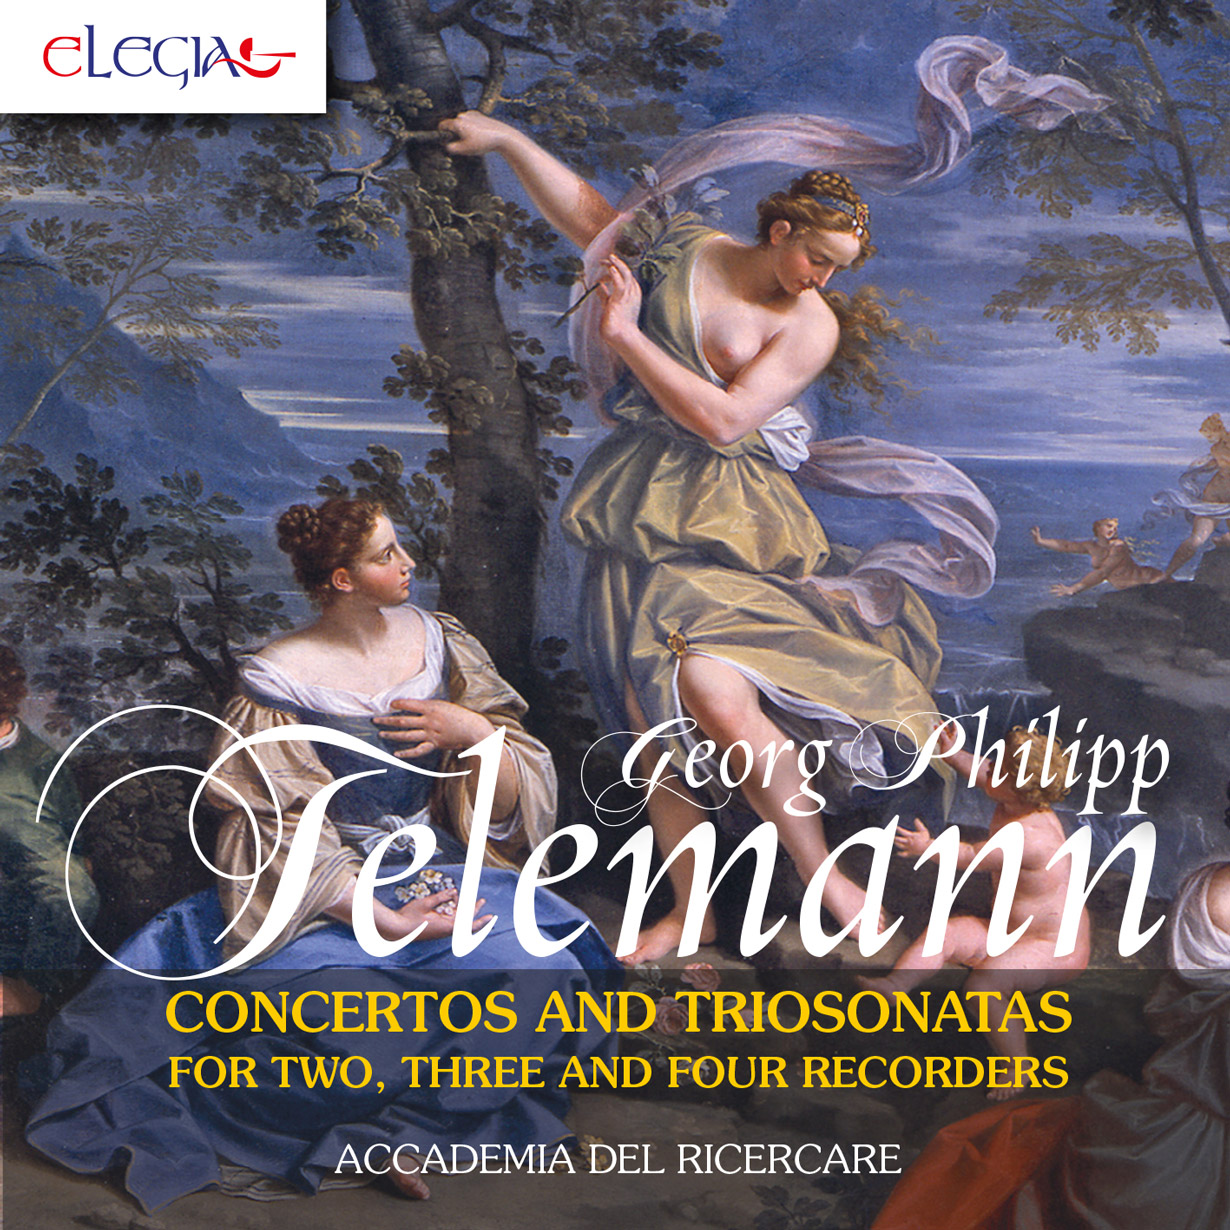 Georg Philipp Telemann. Concertos and triosonatas